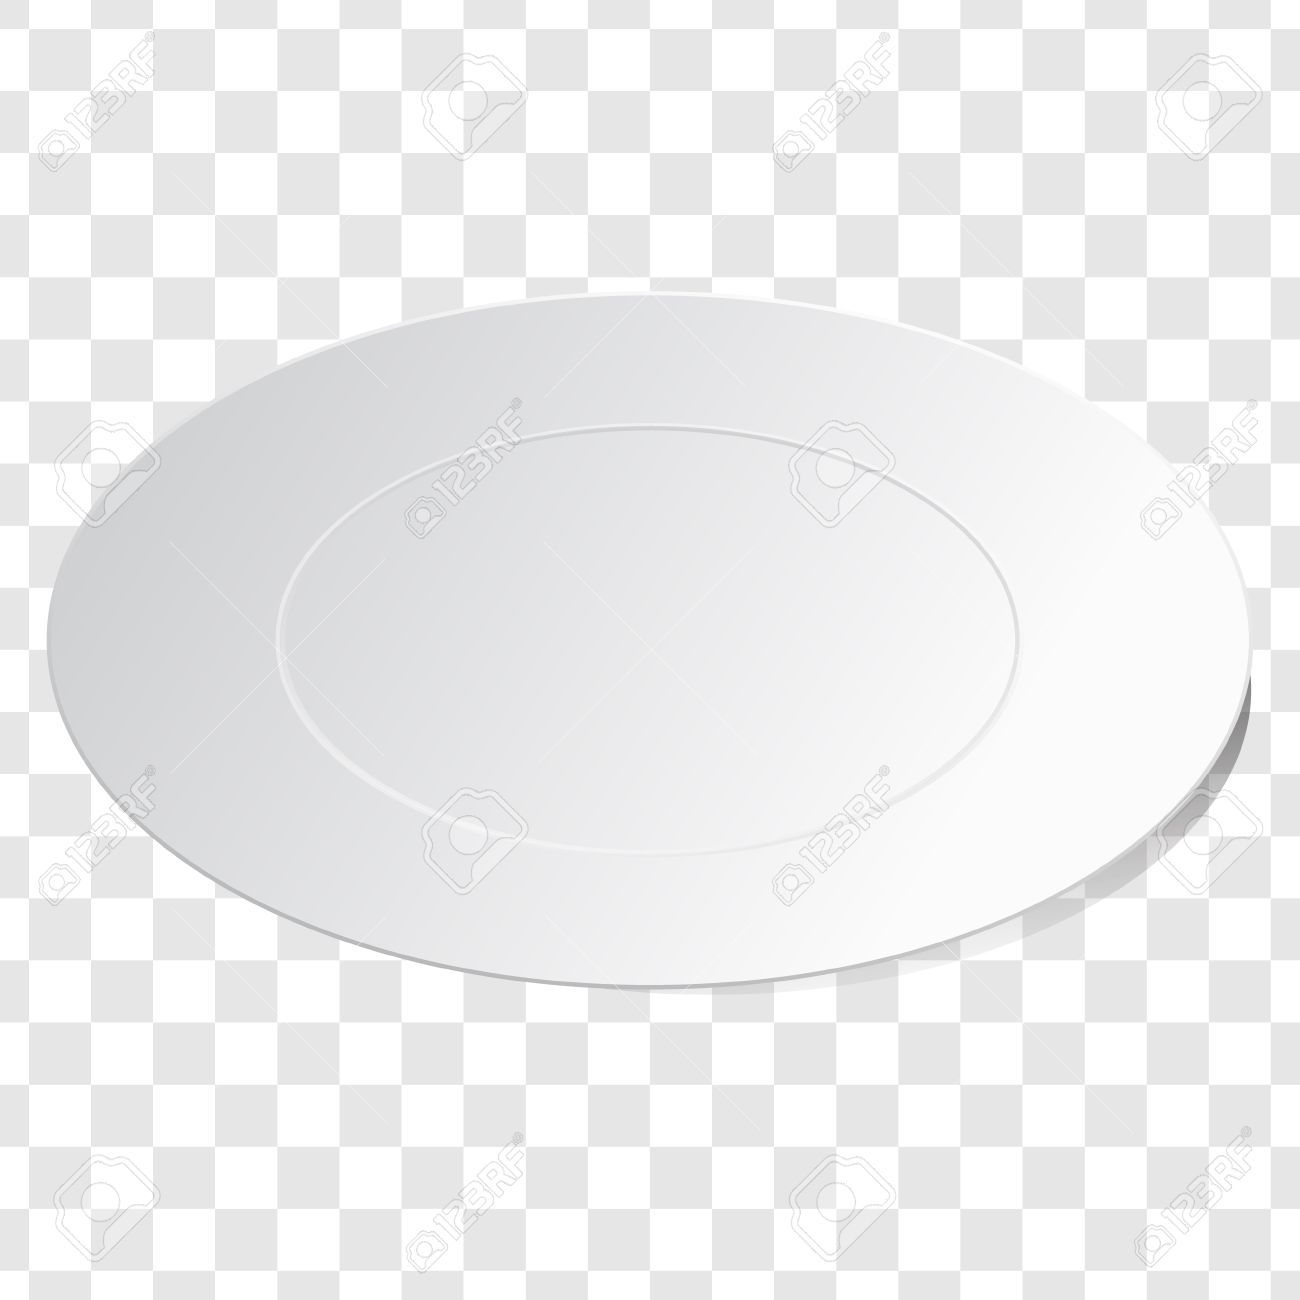 Empty white dish plate background. Vector round dinner plate. Illustration on transparent background.  sc 1 st  123RF.com & Empty White Dish Plate Background. Vector Round Dinner Plate ...